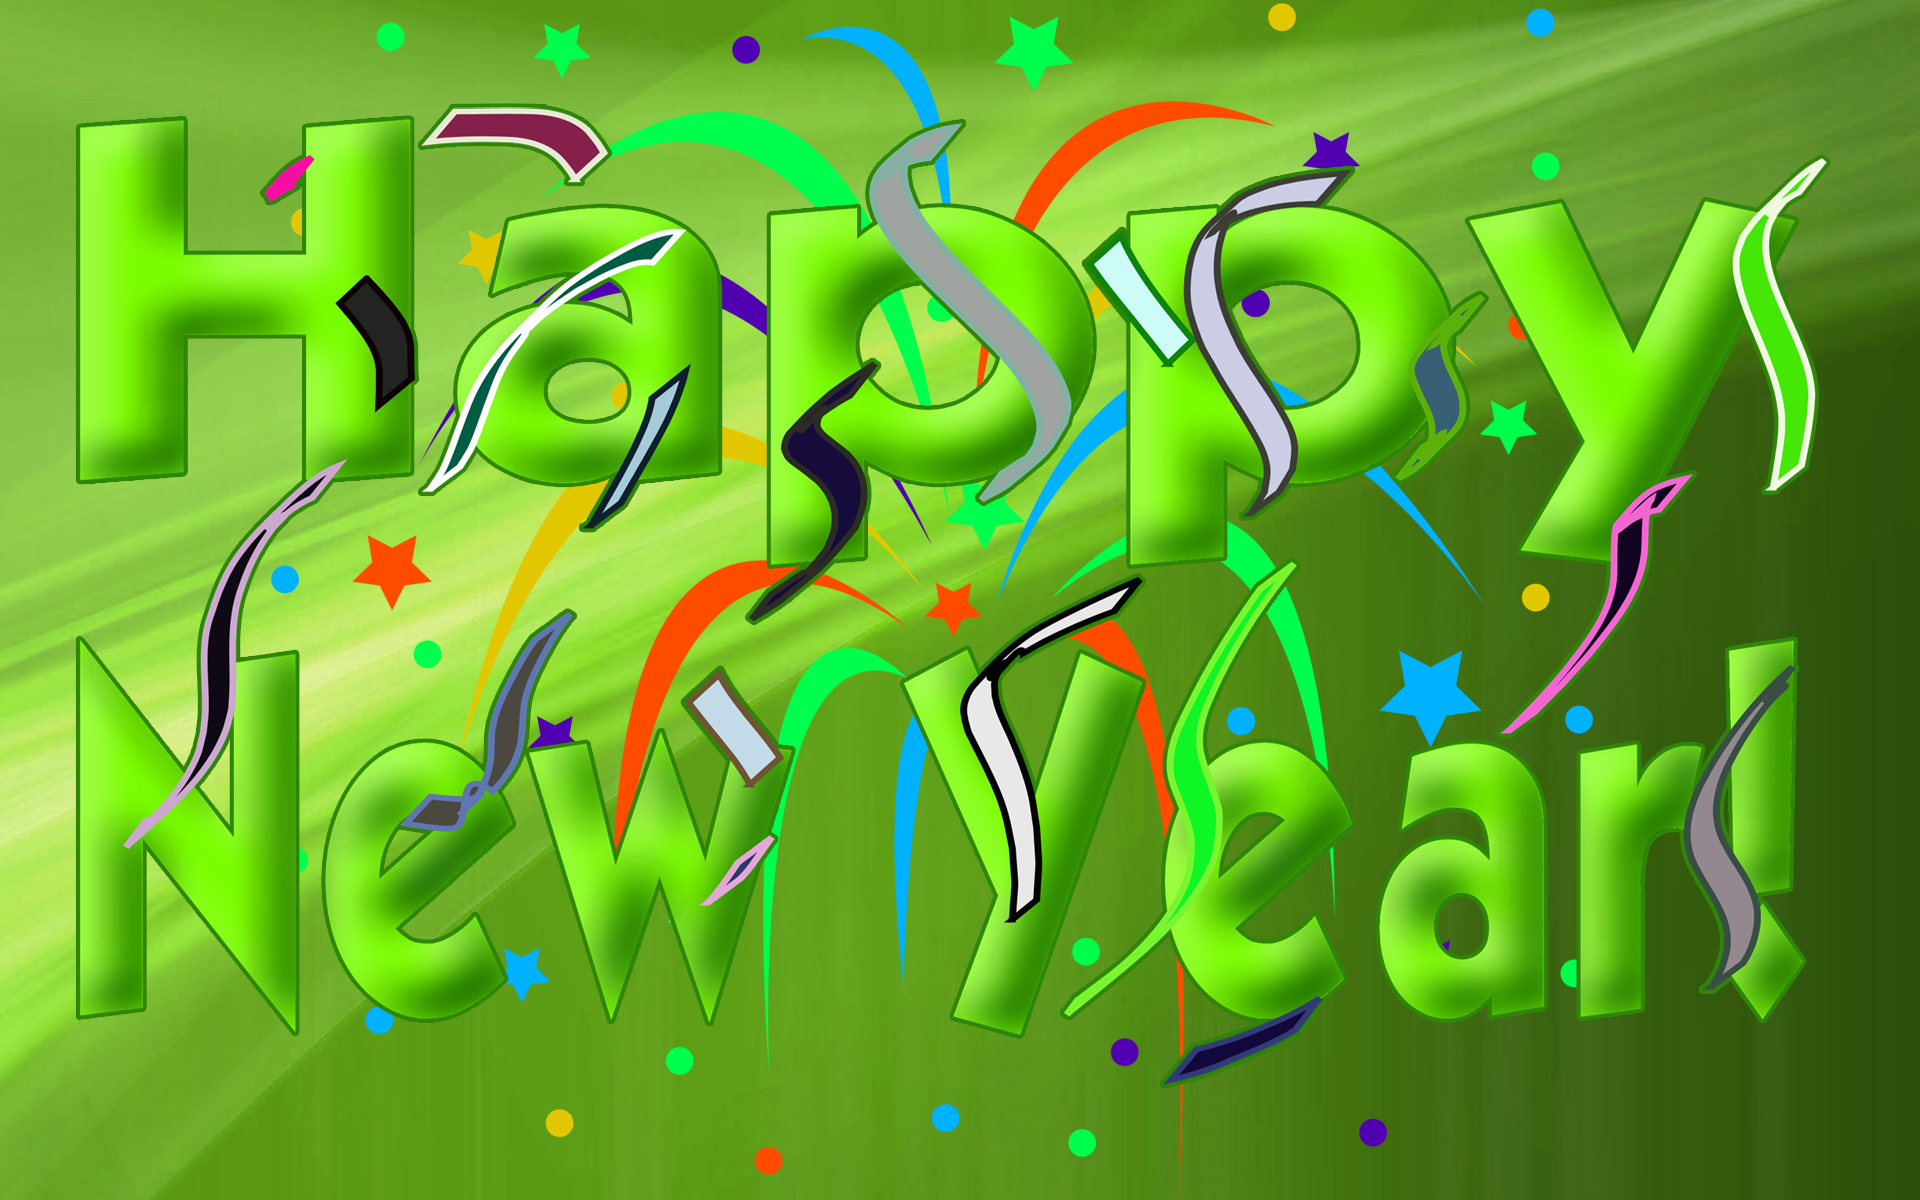 48] Happy New Year 2015 Pc Wallpaper on WallpaperSafari 1920x1200